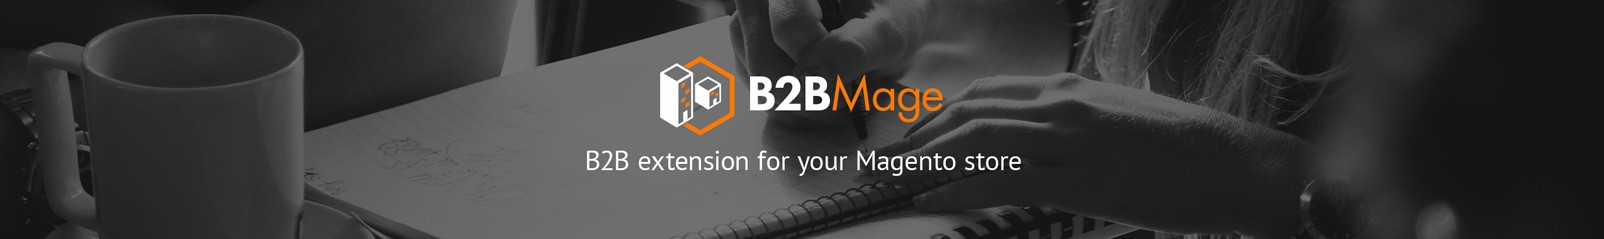 B2BMage Magento Extension